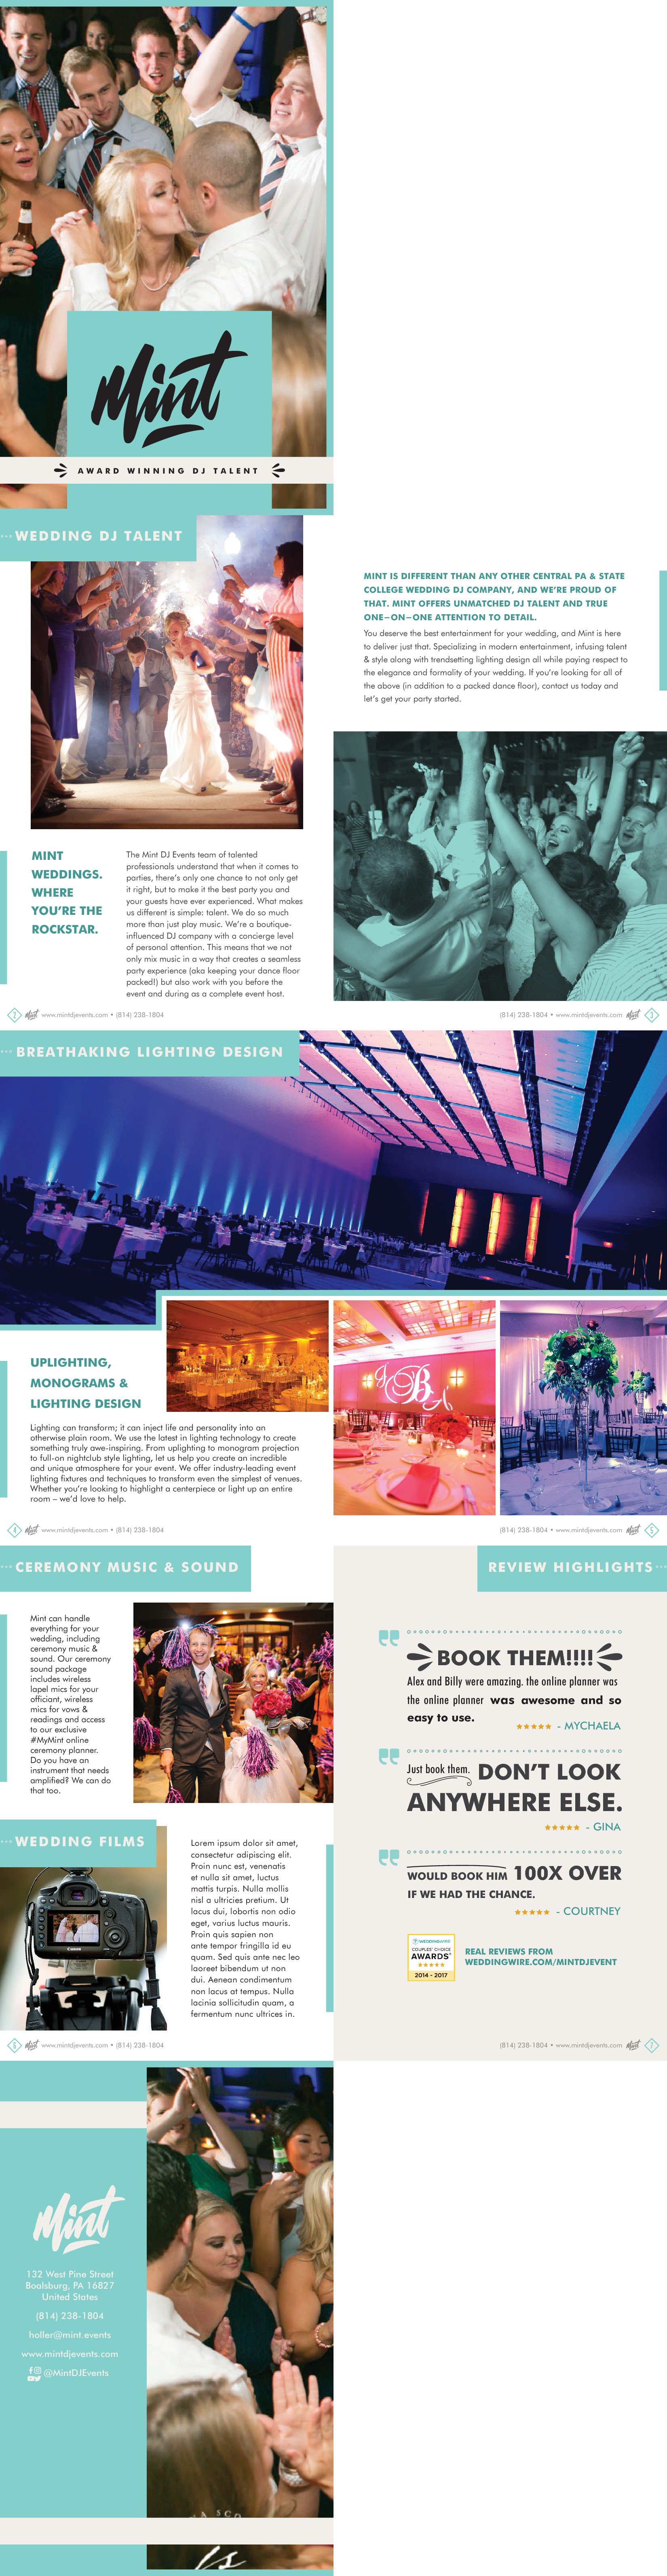 Create a Wedding Booklet for Mint DJ Events